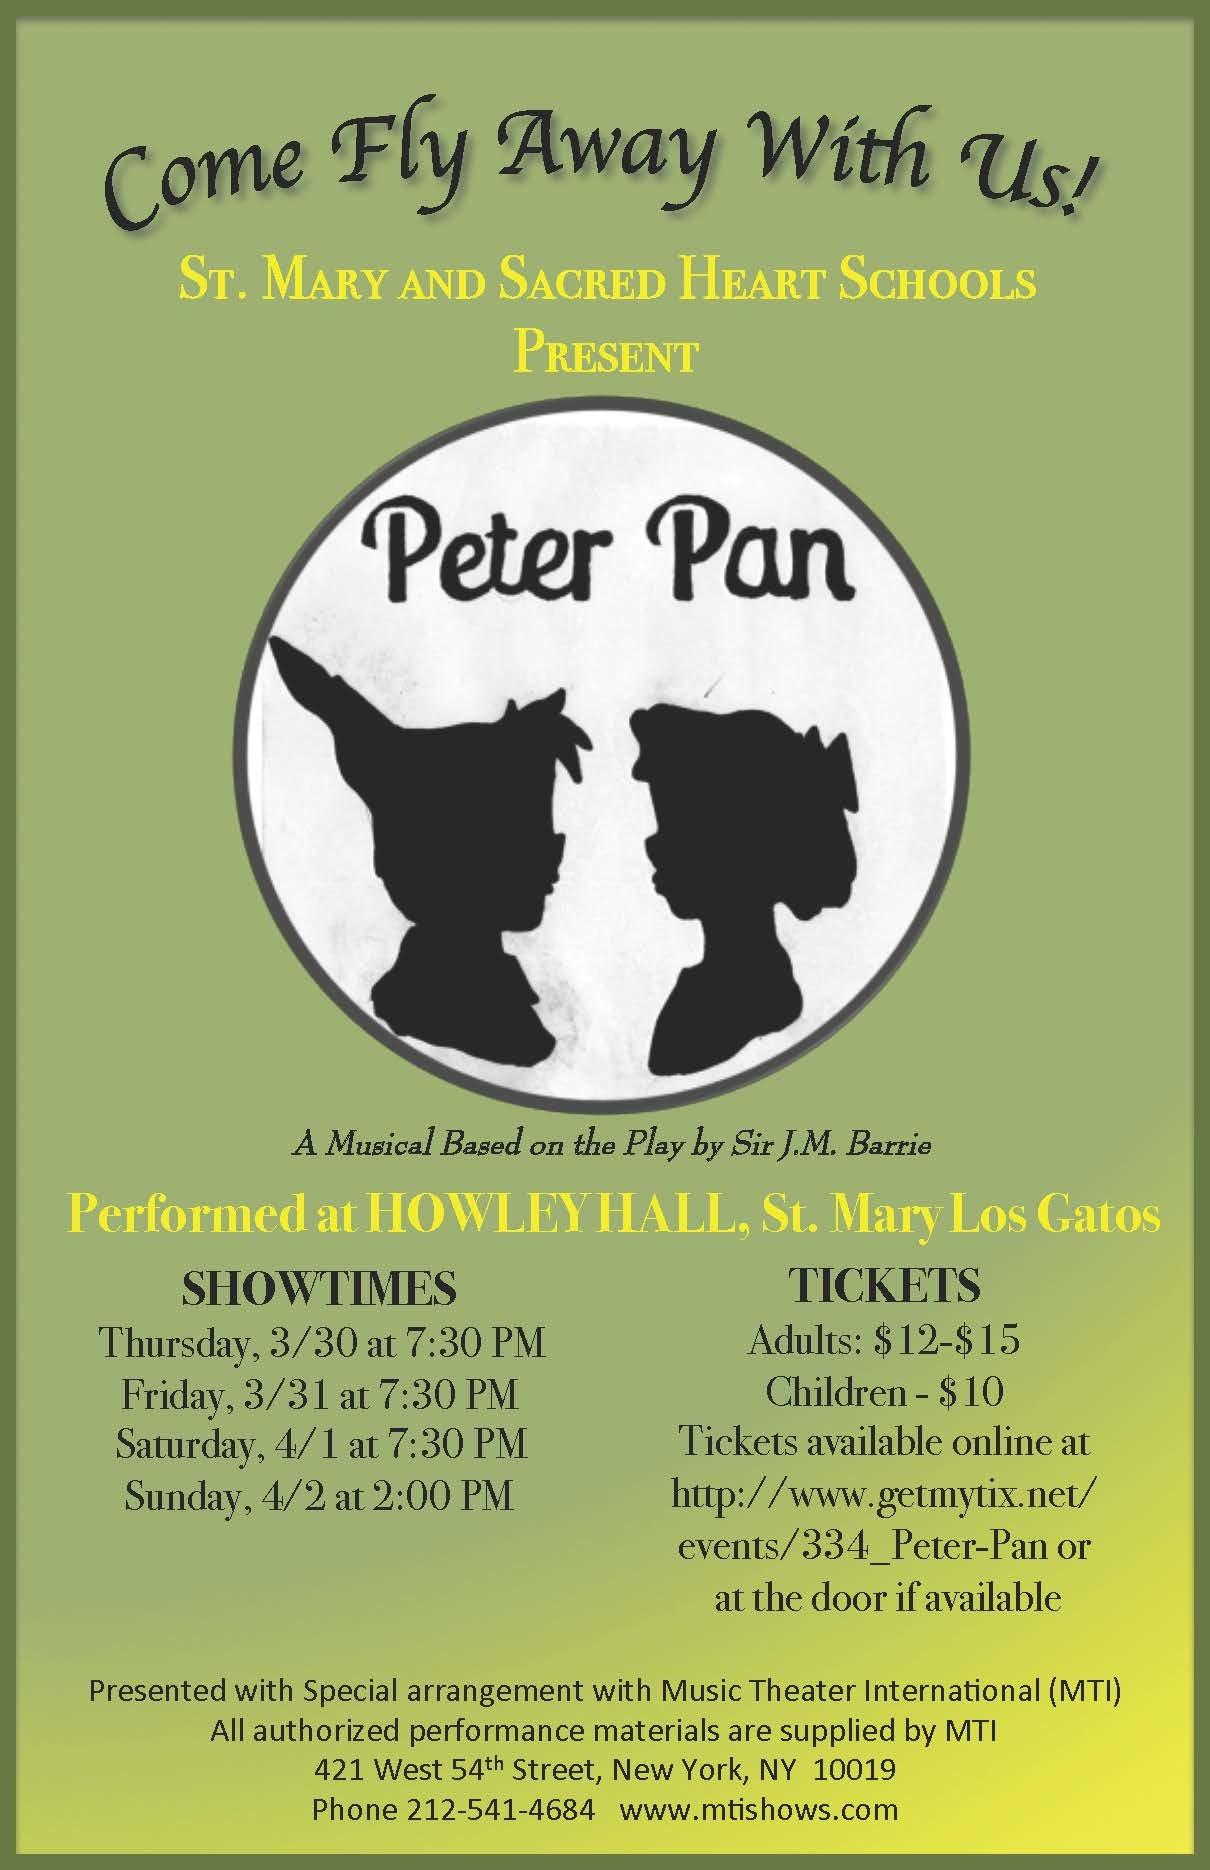 St. Mary and Sacred Heart School present  Peter Pan